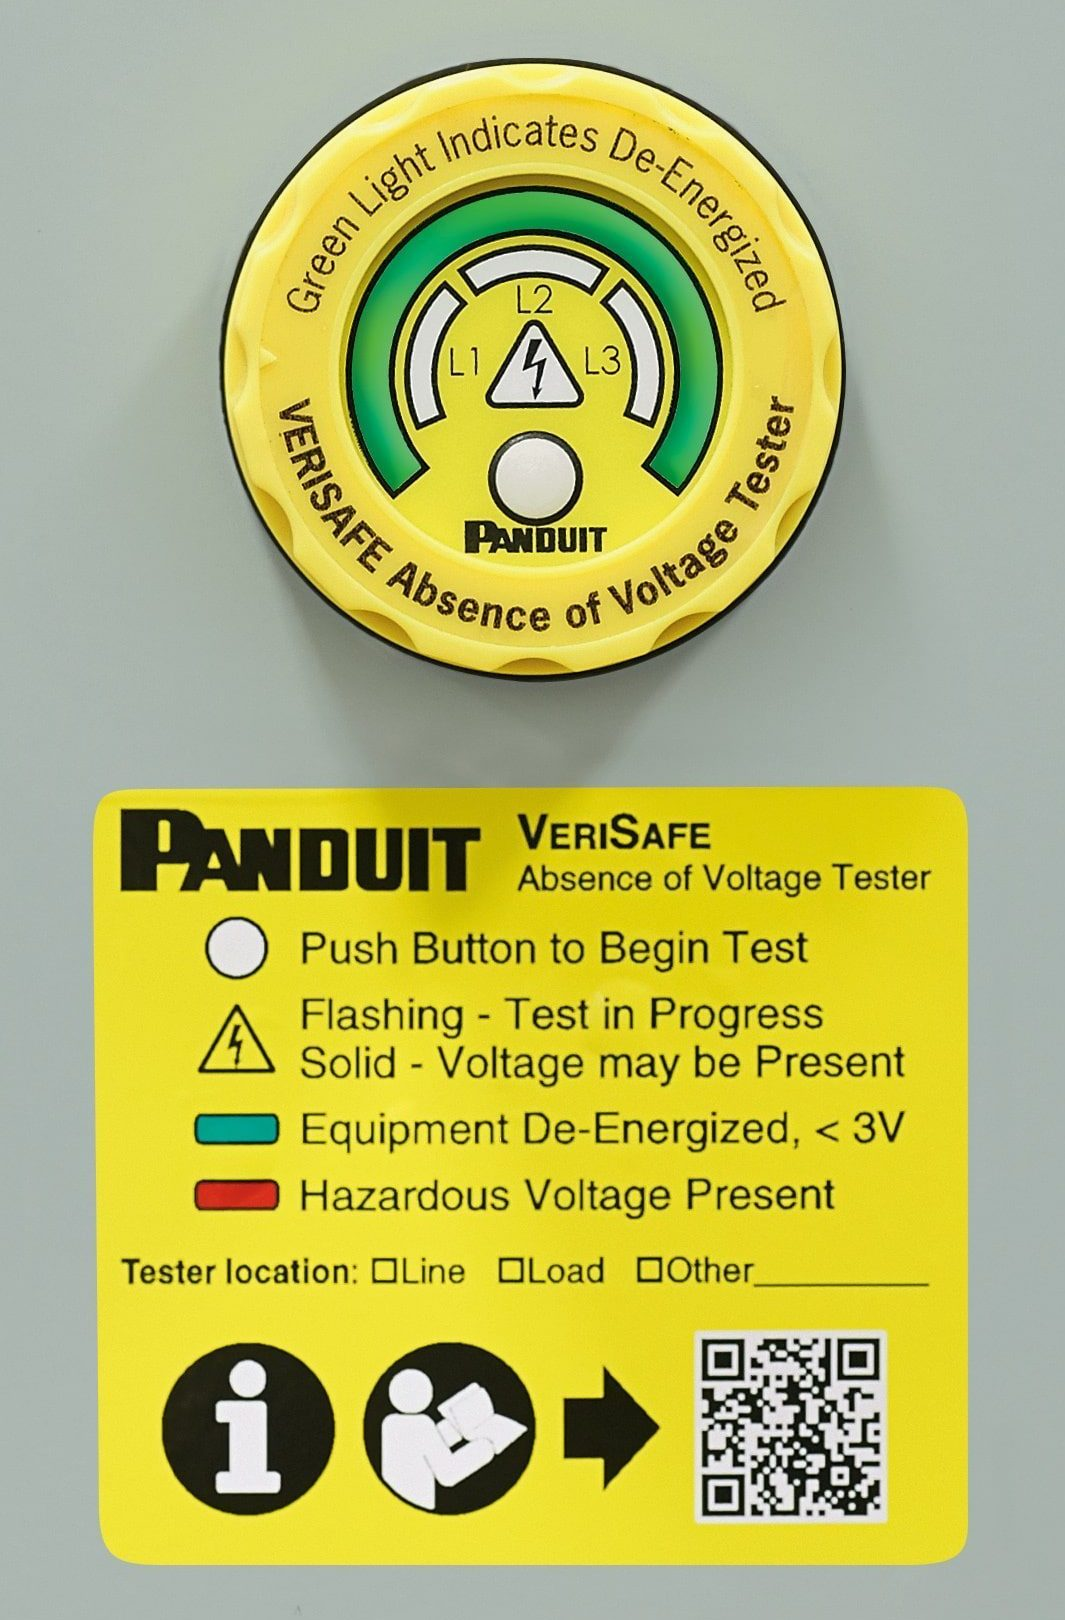 Panduit Verisafe Instructions